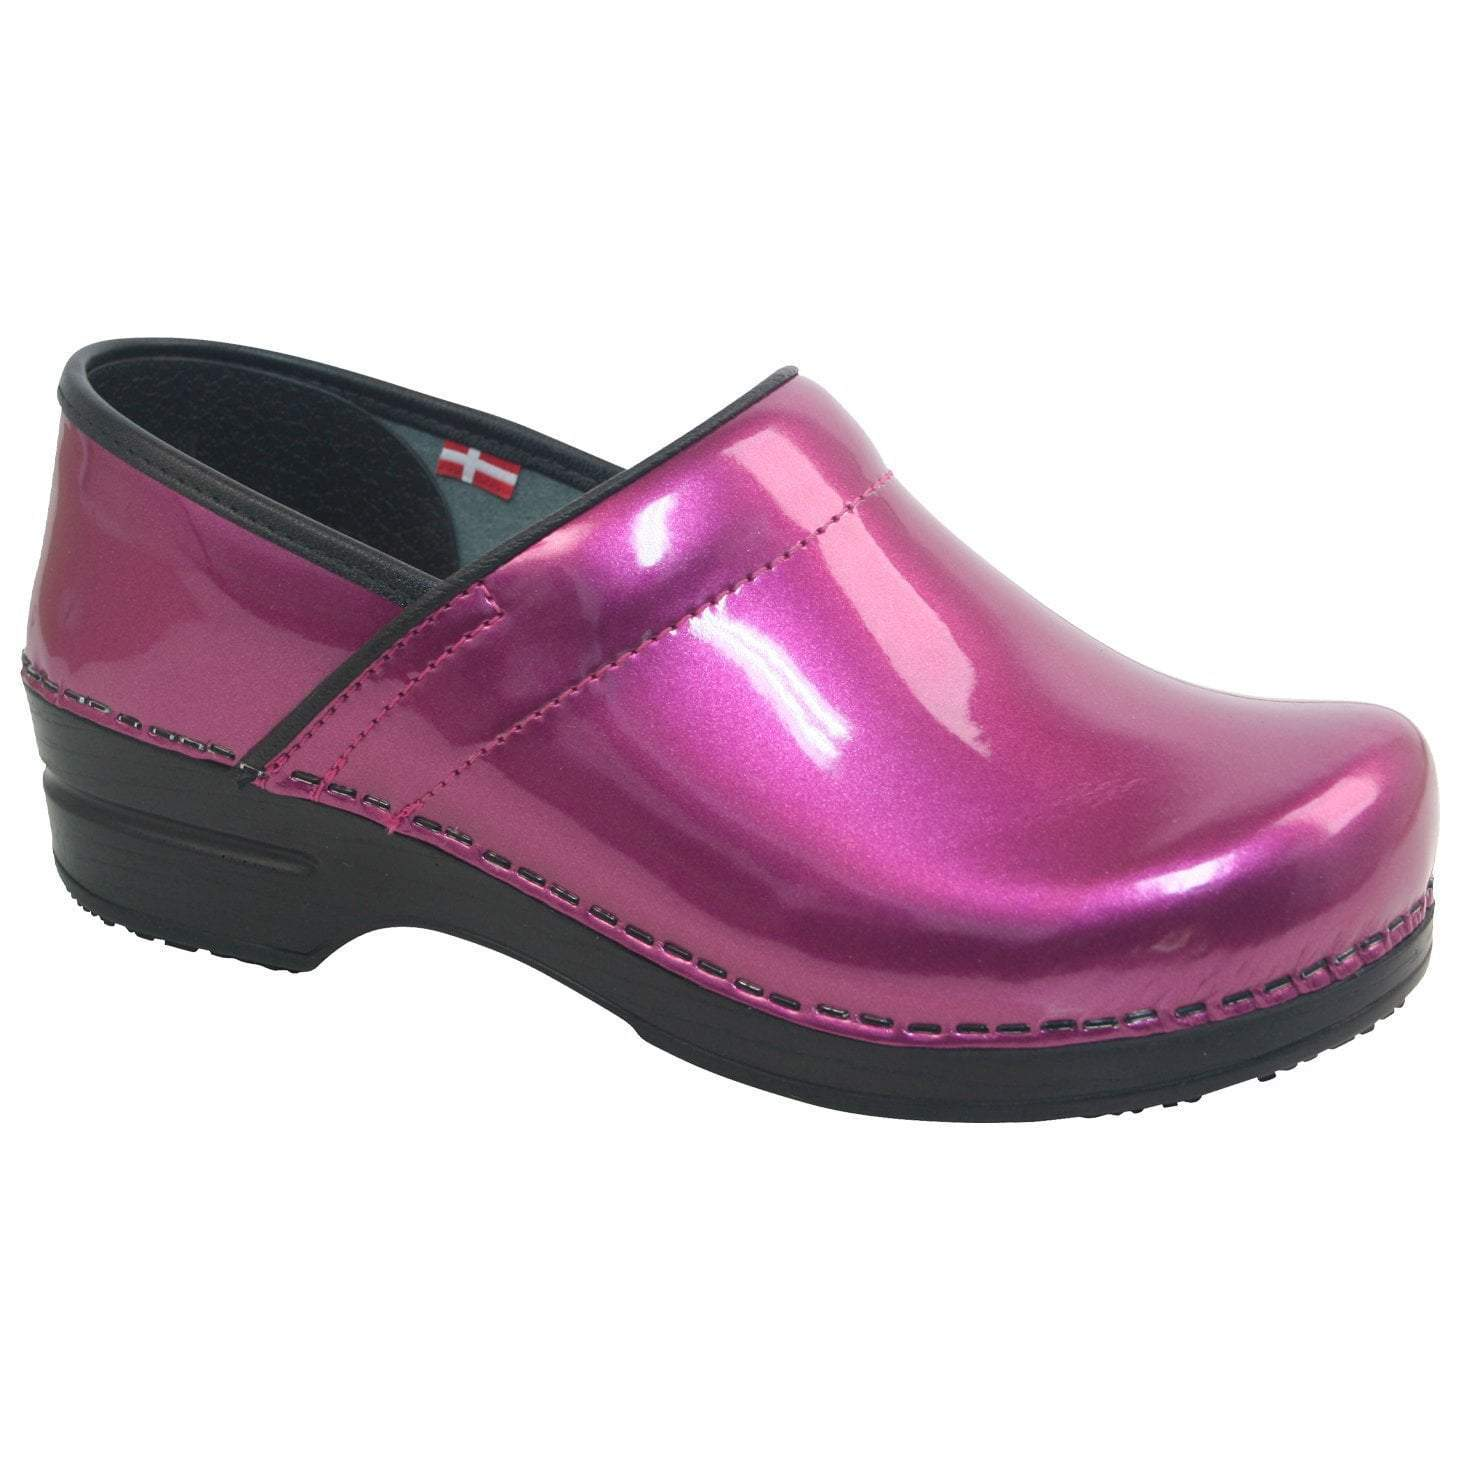 Sanita Sabel Women's in Purple Closed Back Clog